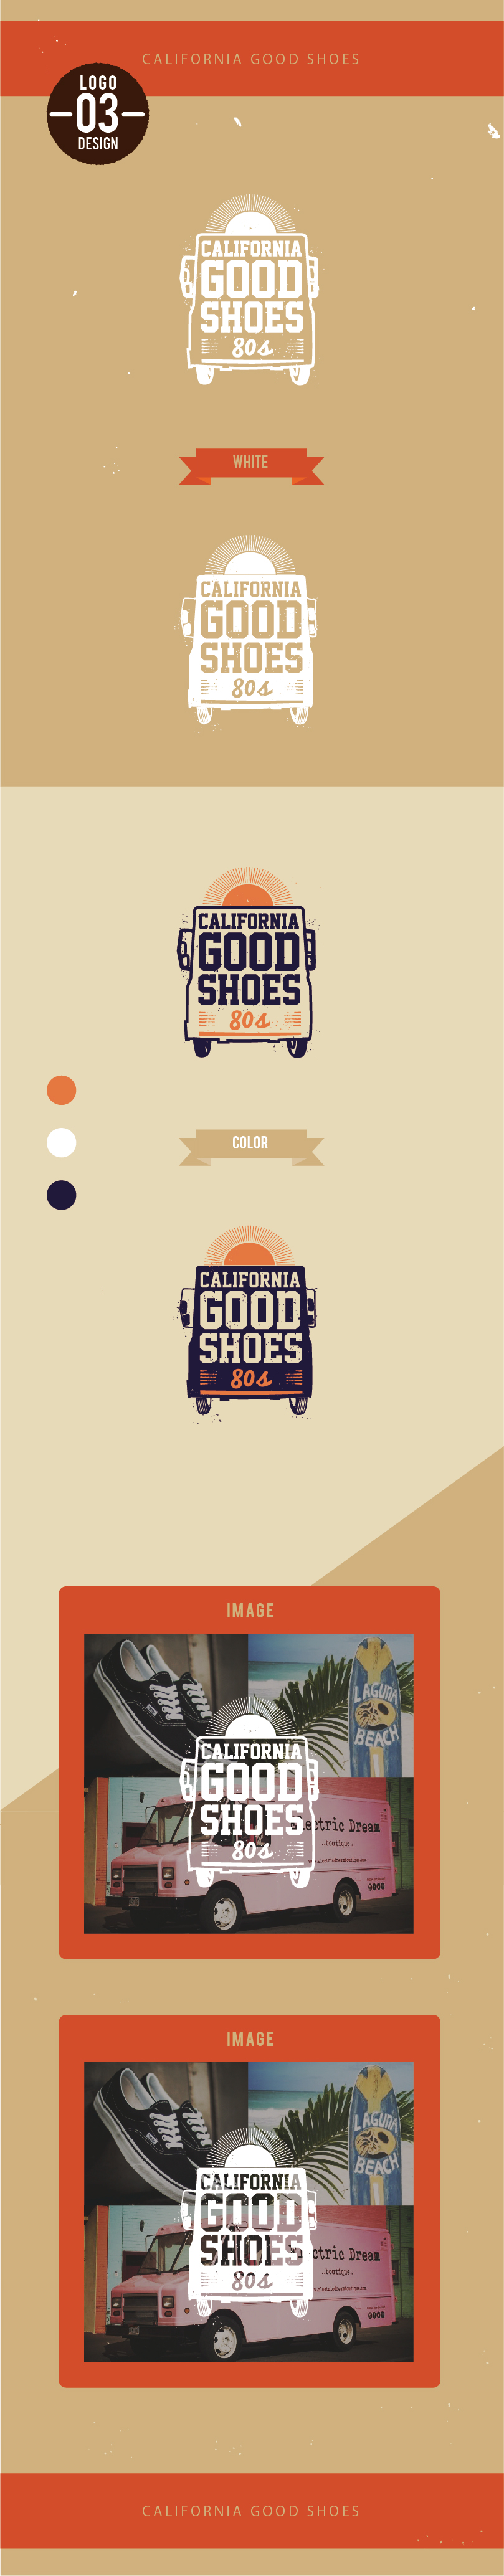 CALIFORNIA GOOD SHOES_LOGO_01-03